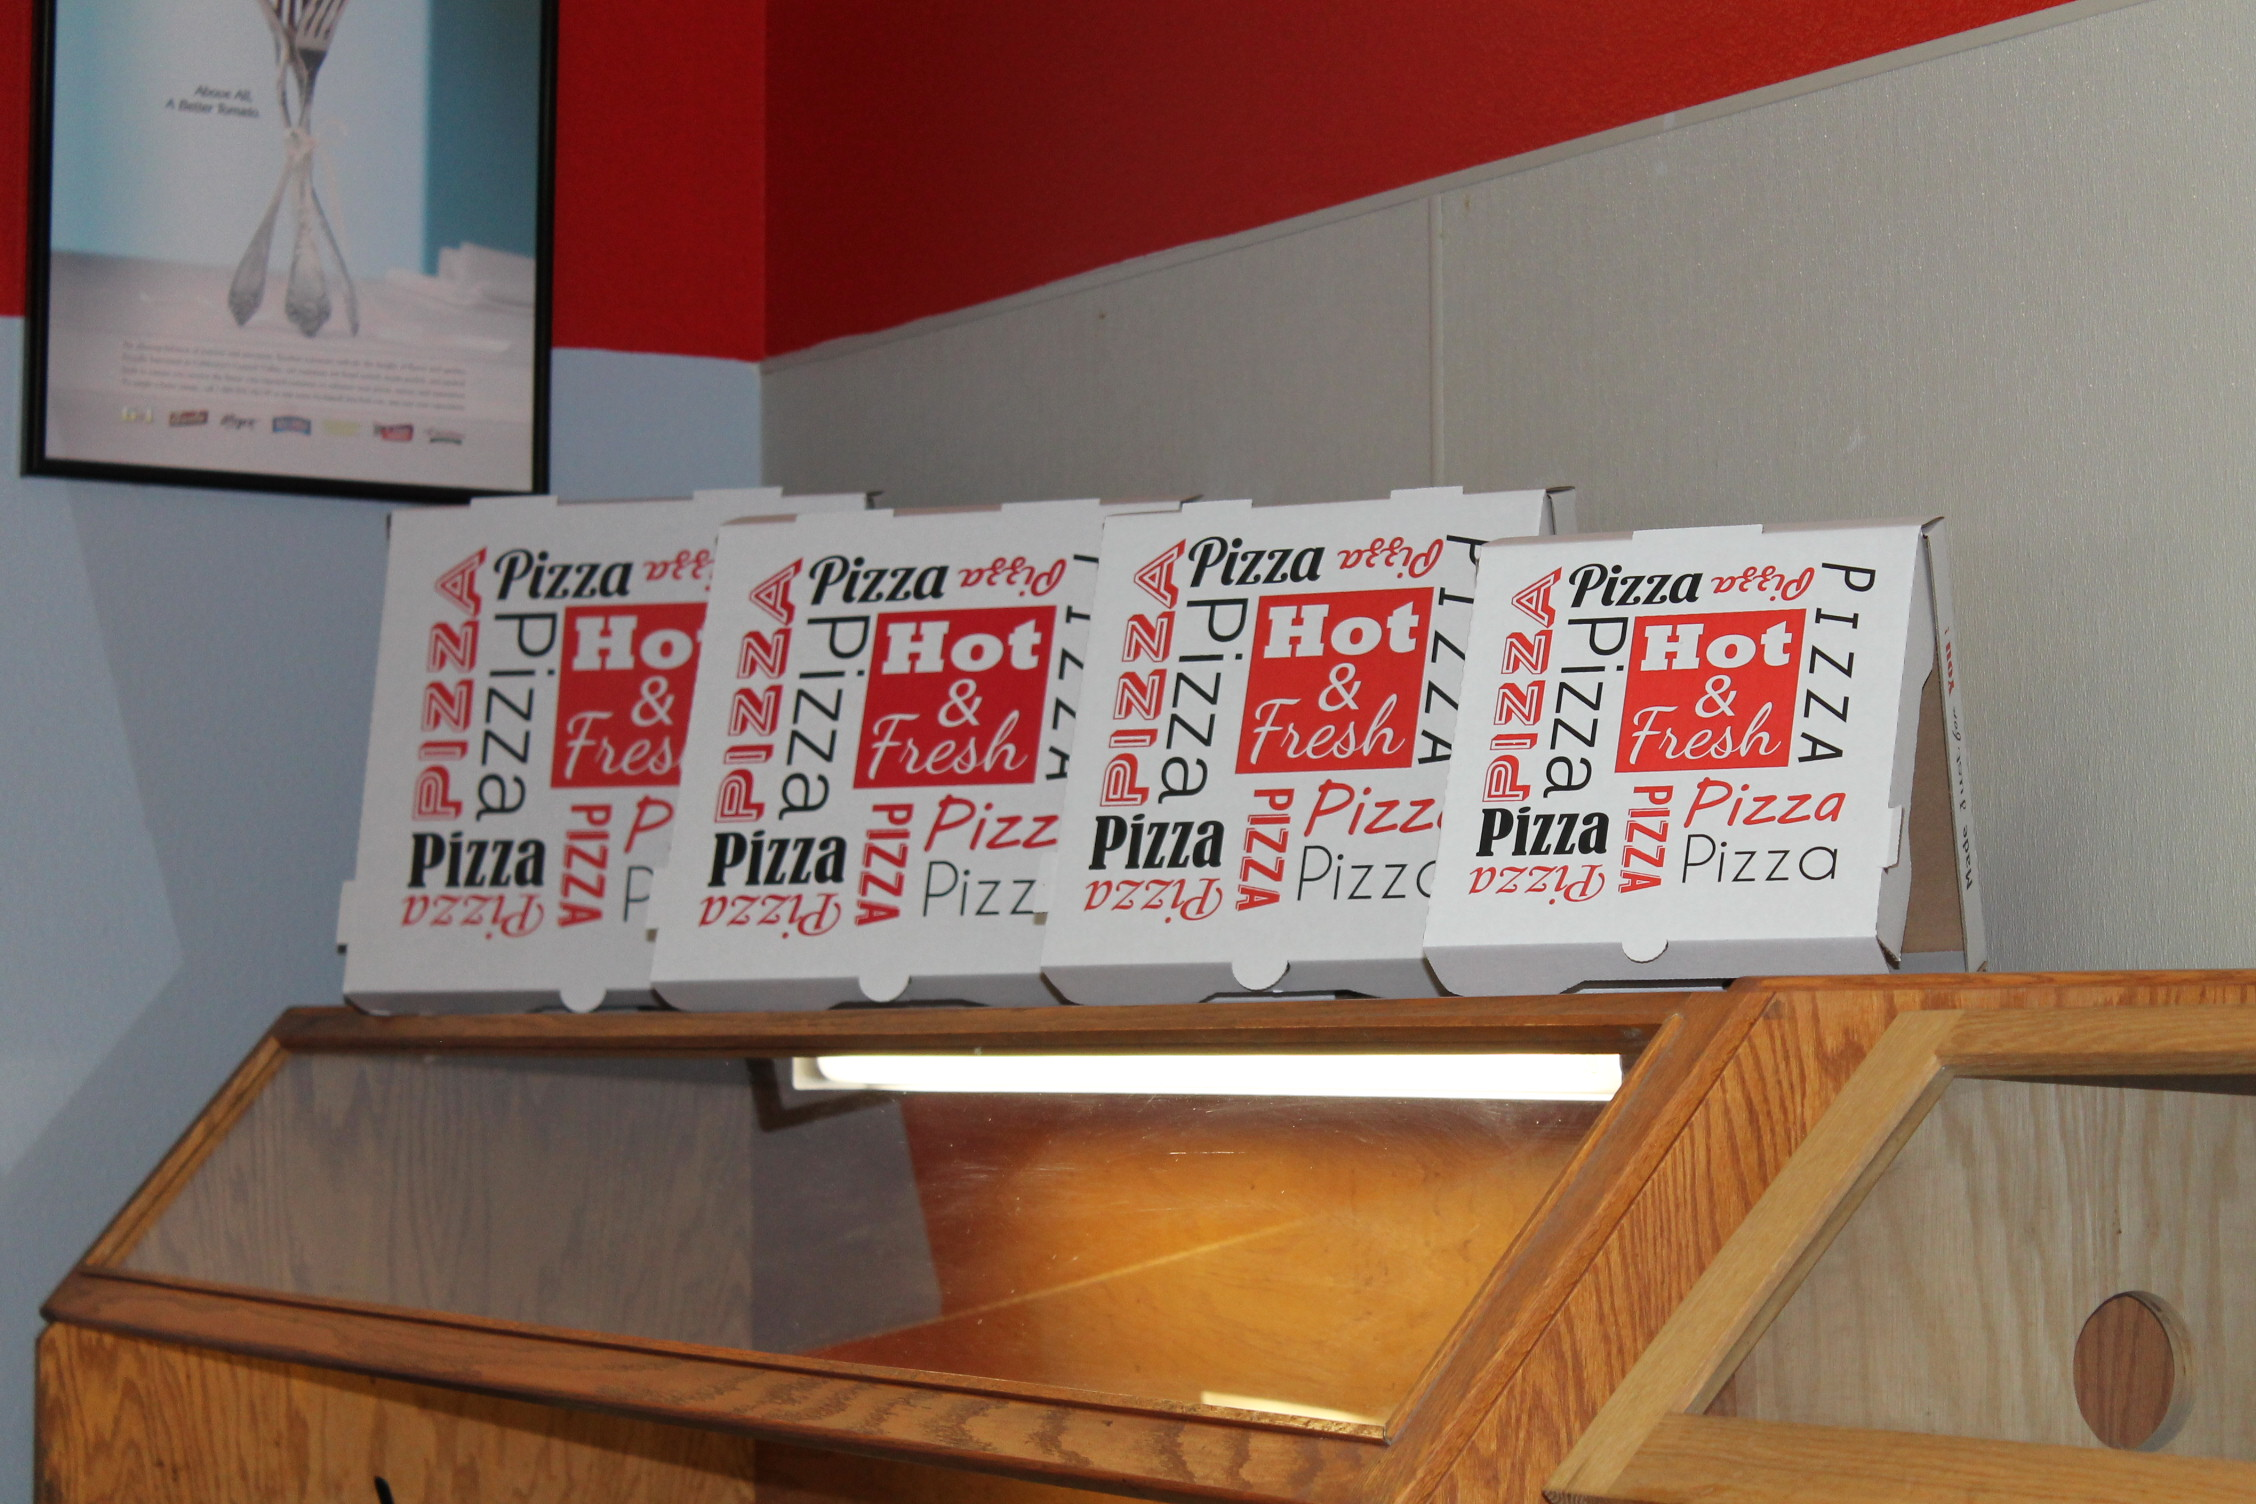 Pizza Plus in Escalon's pizza in four sizes